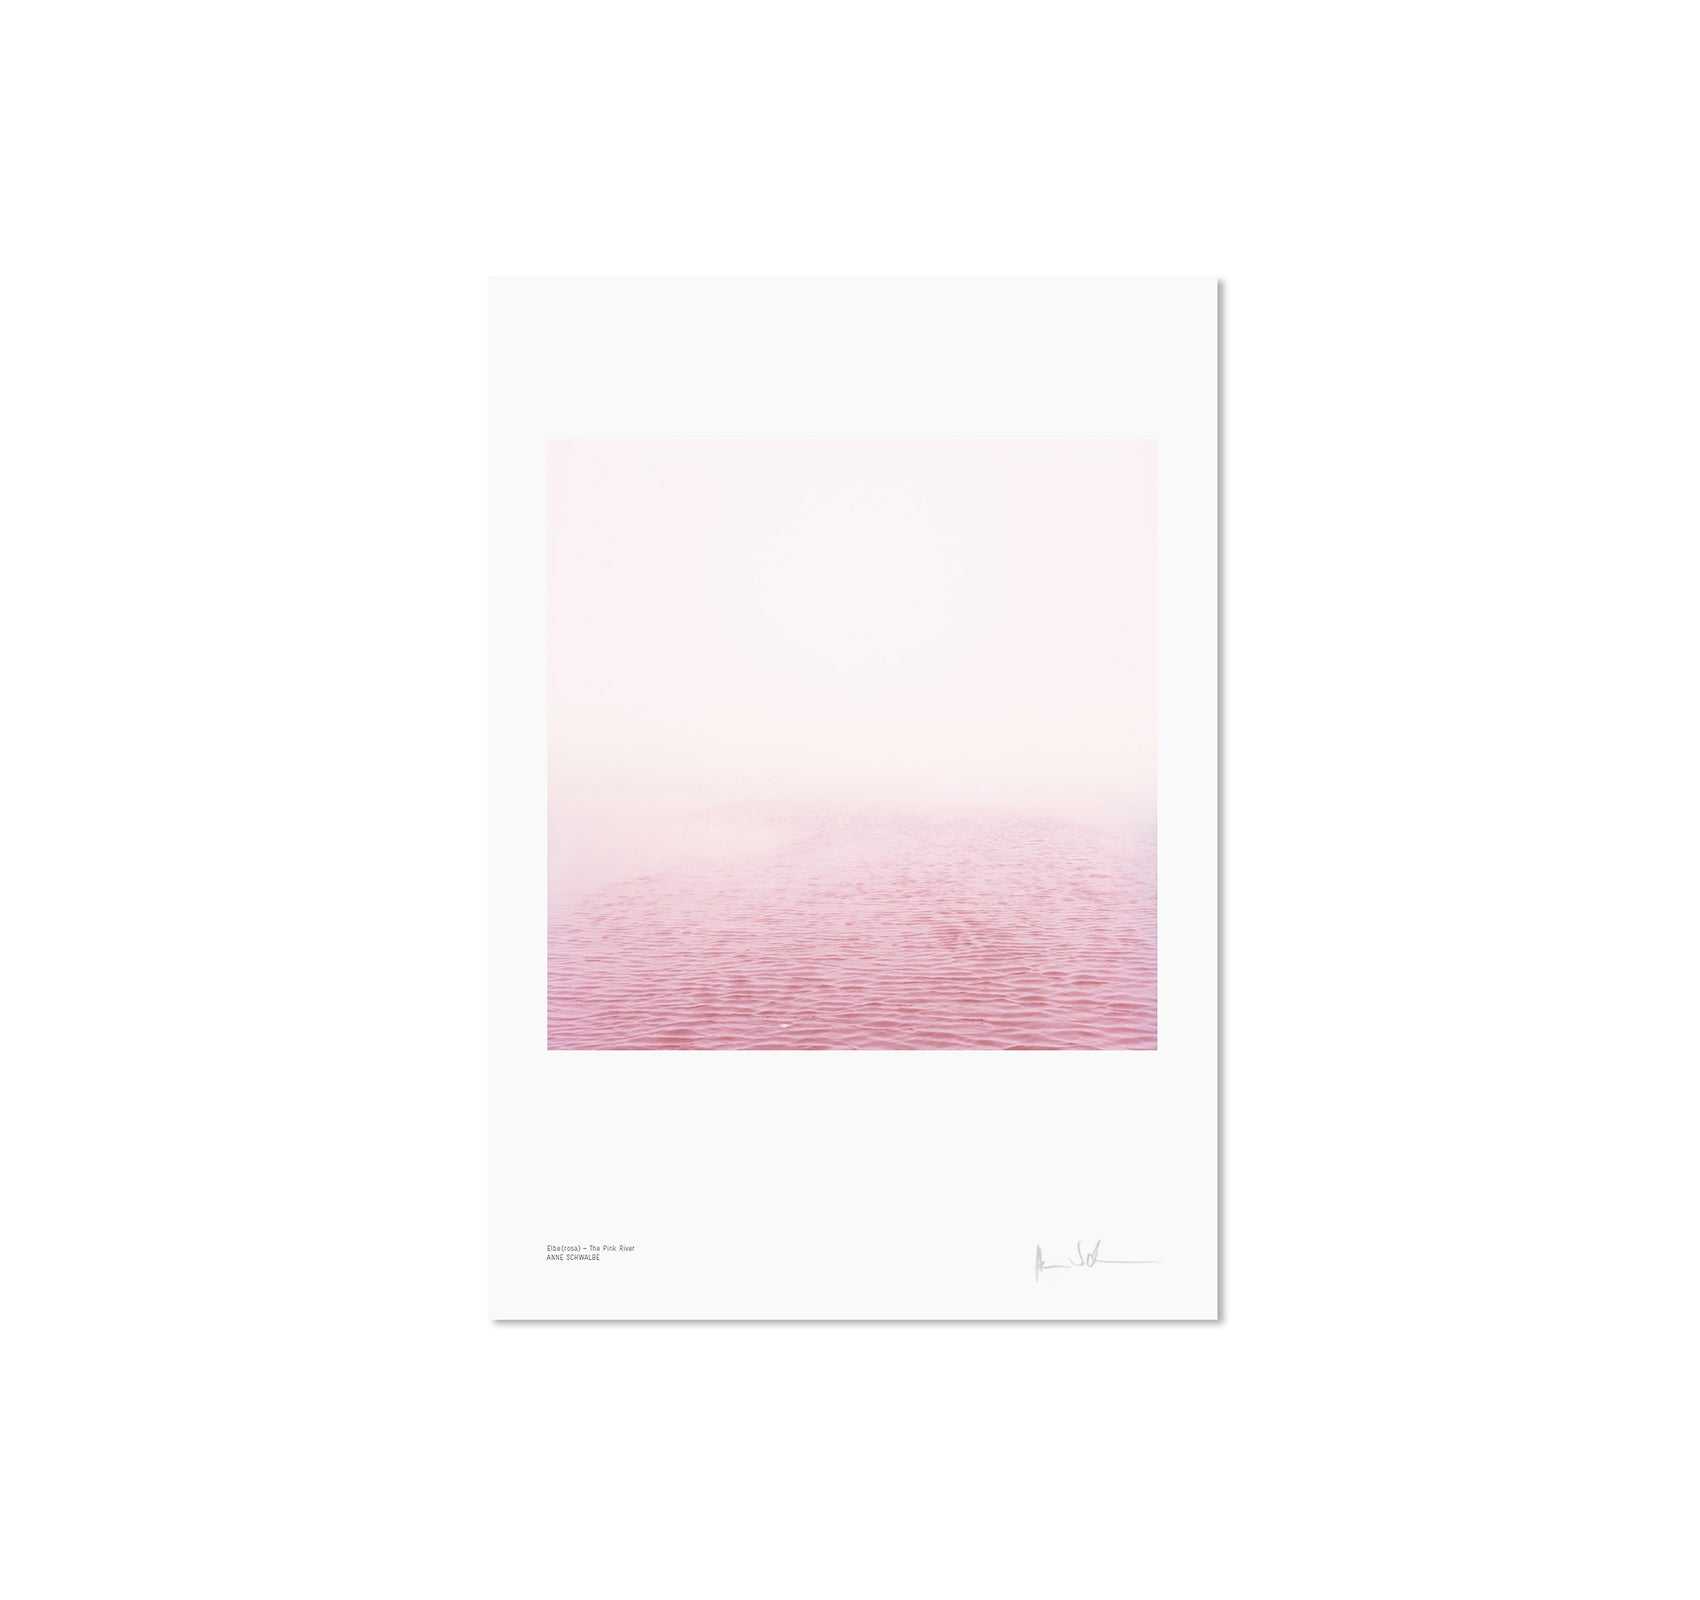 ELBE (ROSA) - THE PINK RIVER by Anne Schwalbe [SIGNED]